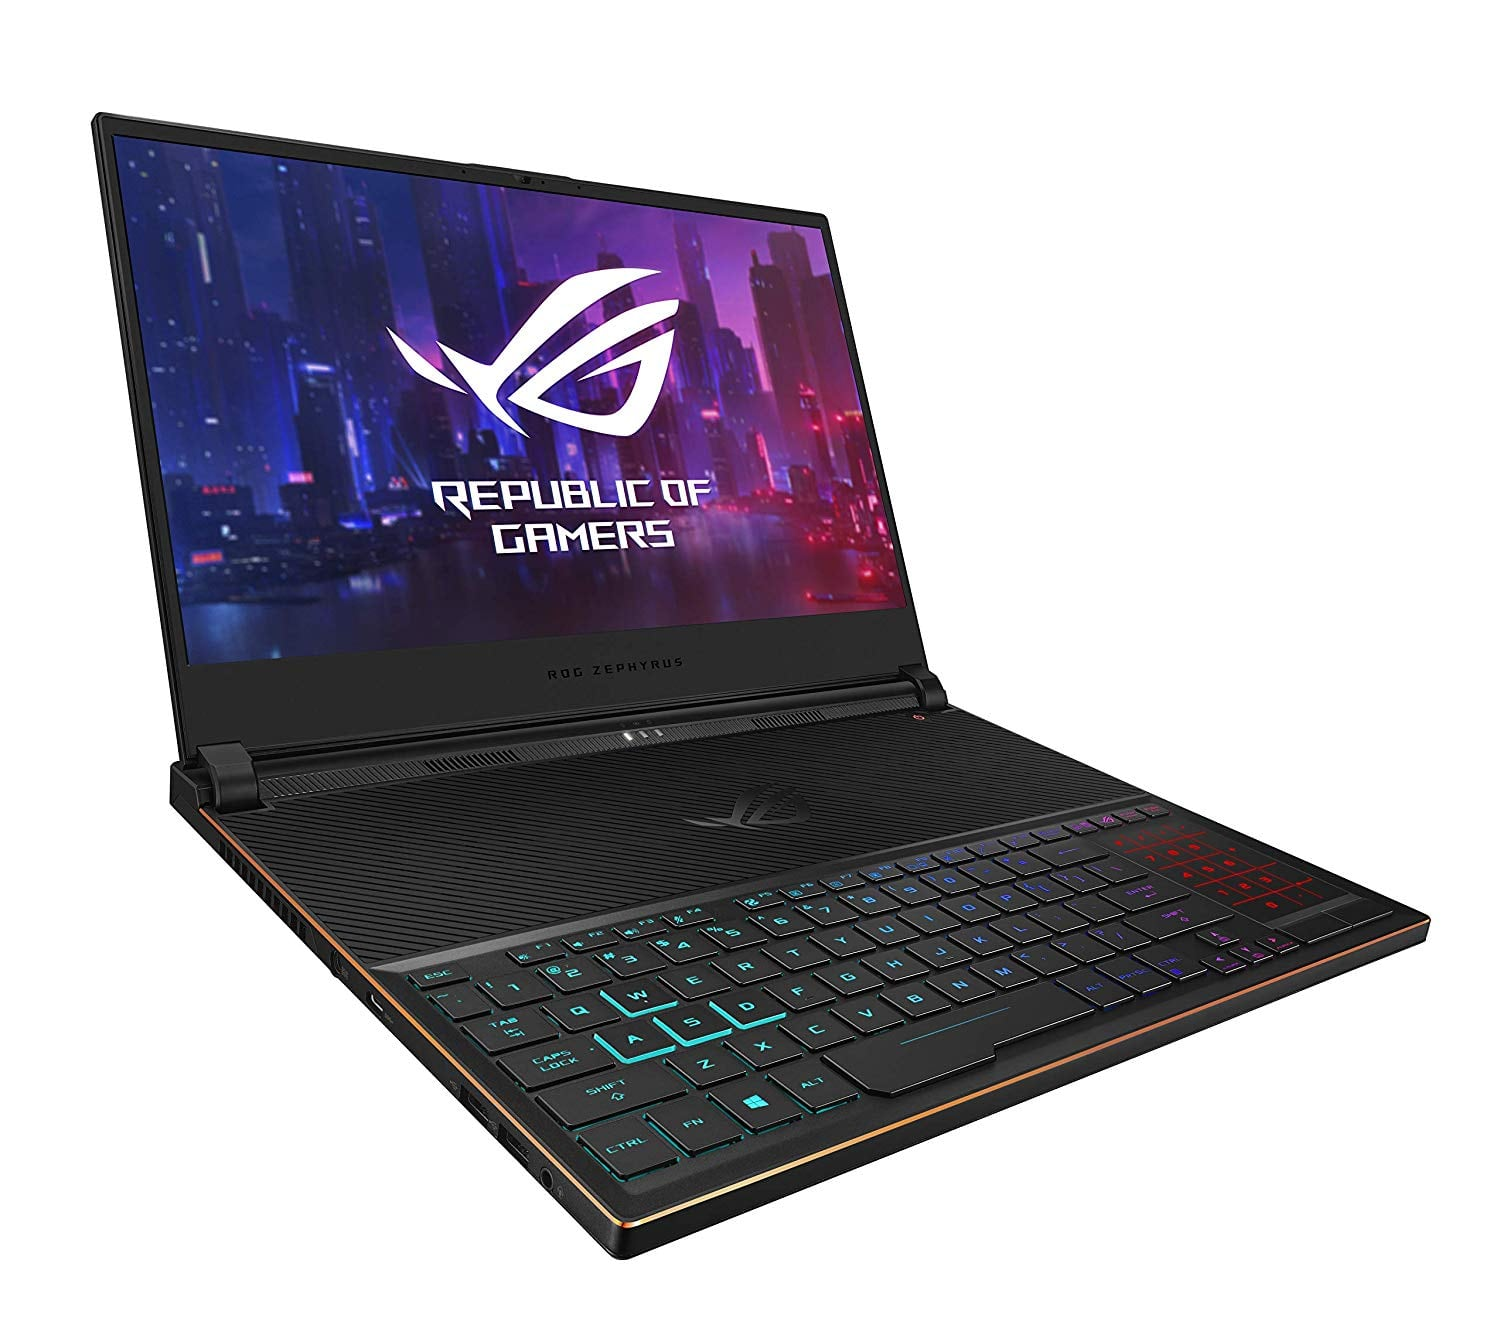 "Asus ROG Zephyrus S Ultra Slim Gaming Laptop, 15.6"" 144Hz IPS Type FHD, GeForce RTX 2070, Intel Core i7-9750H, 16GB DDR4, 512GB PCIe Nvme SSD,Windows 10 $1199"